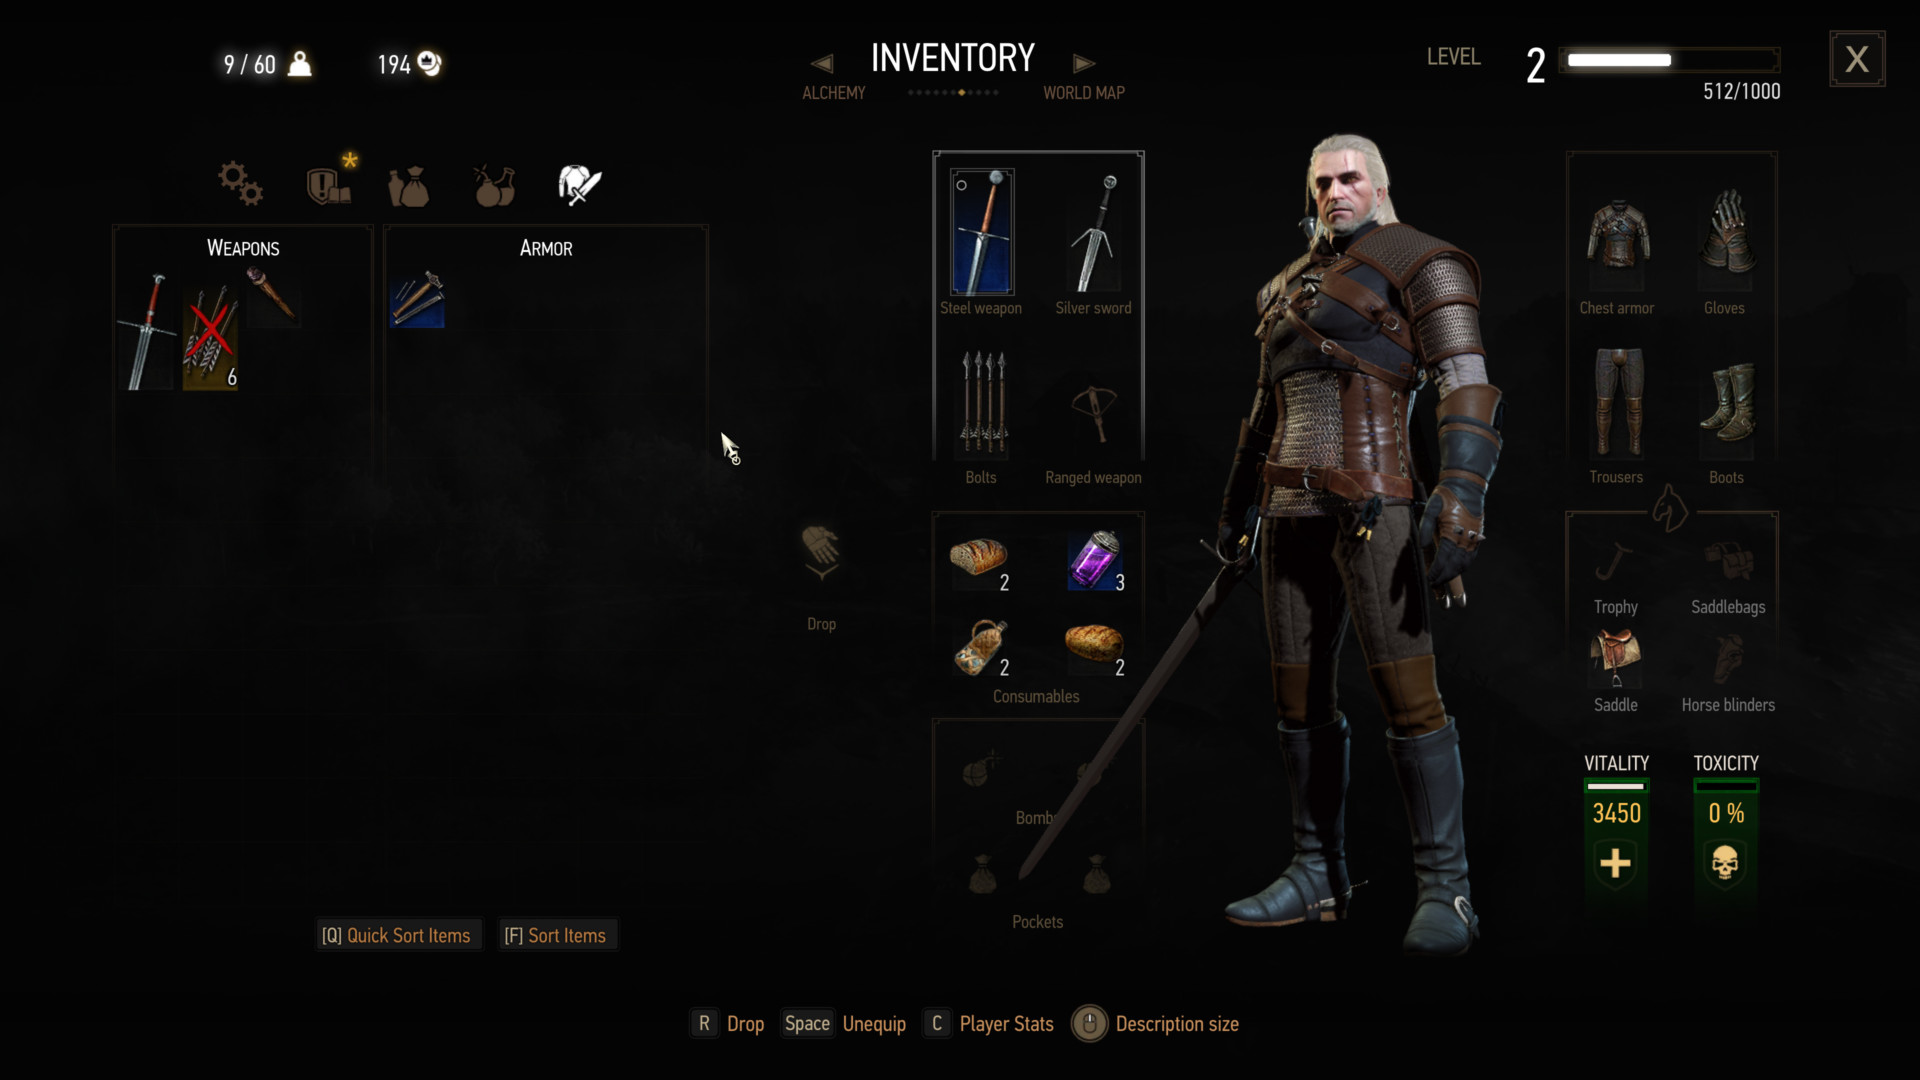 Inventory screenshot of The Witcher 3: Wild Hunt video game interface.